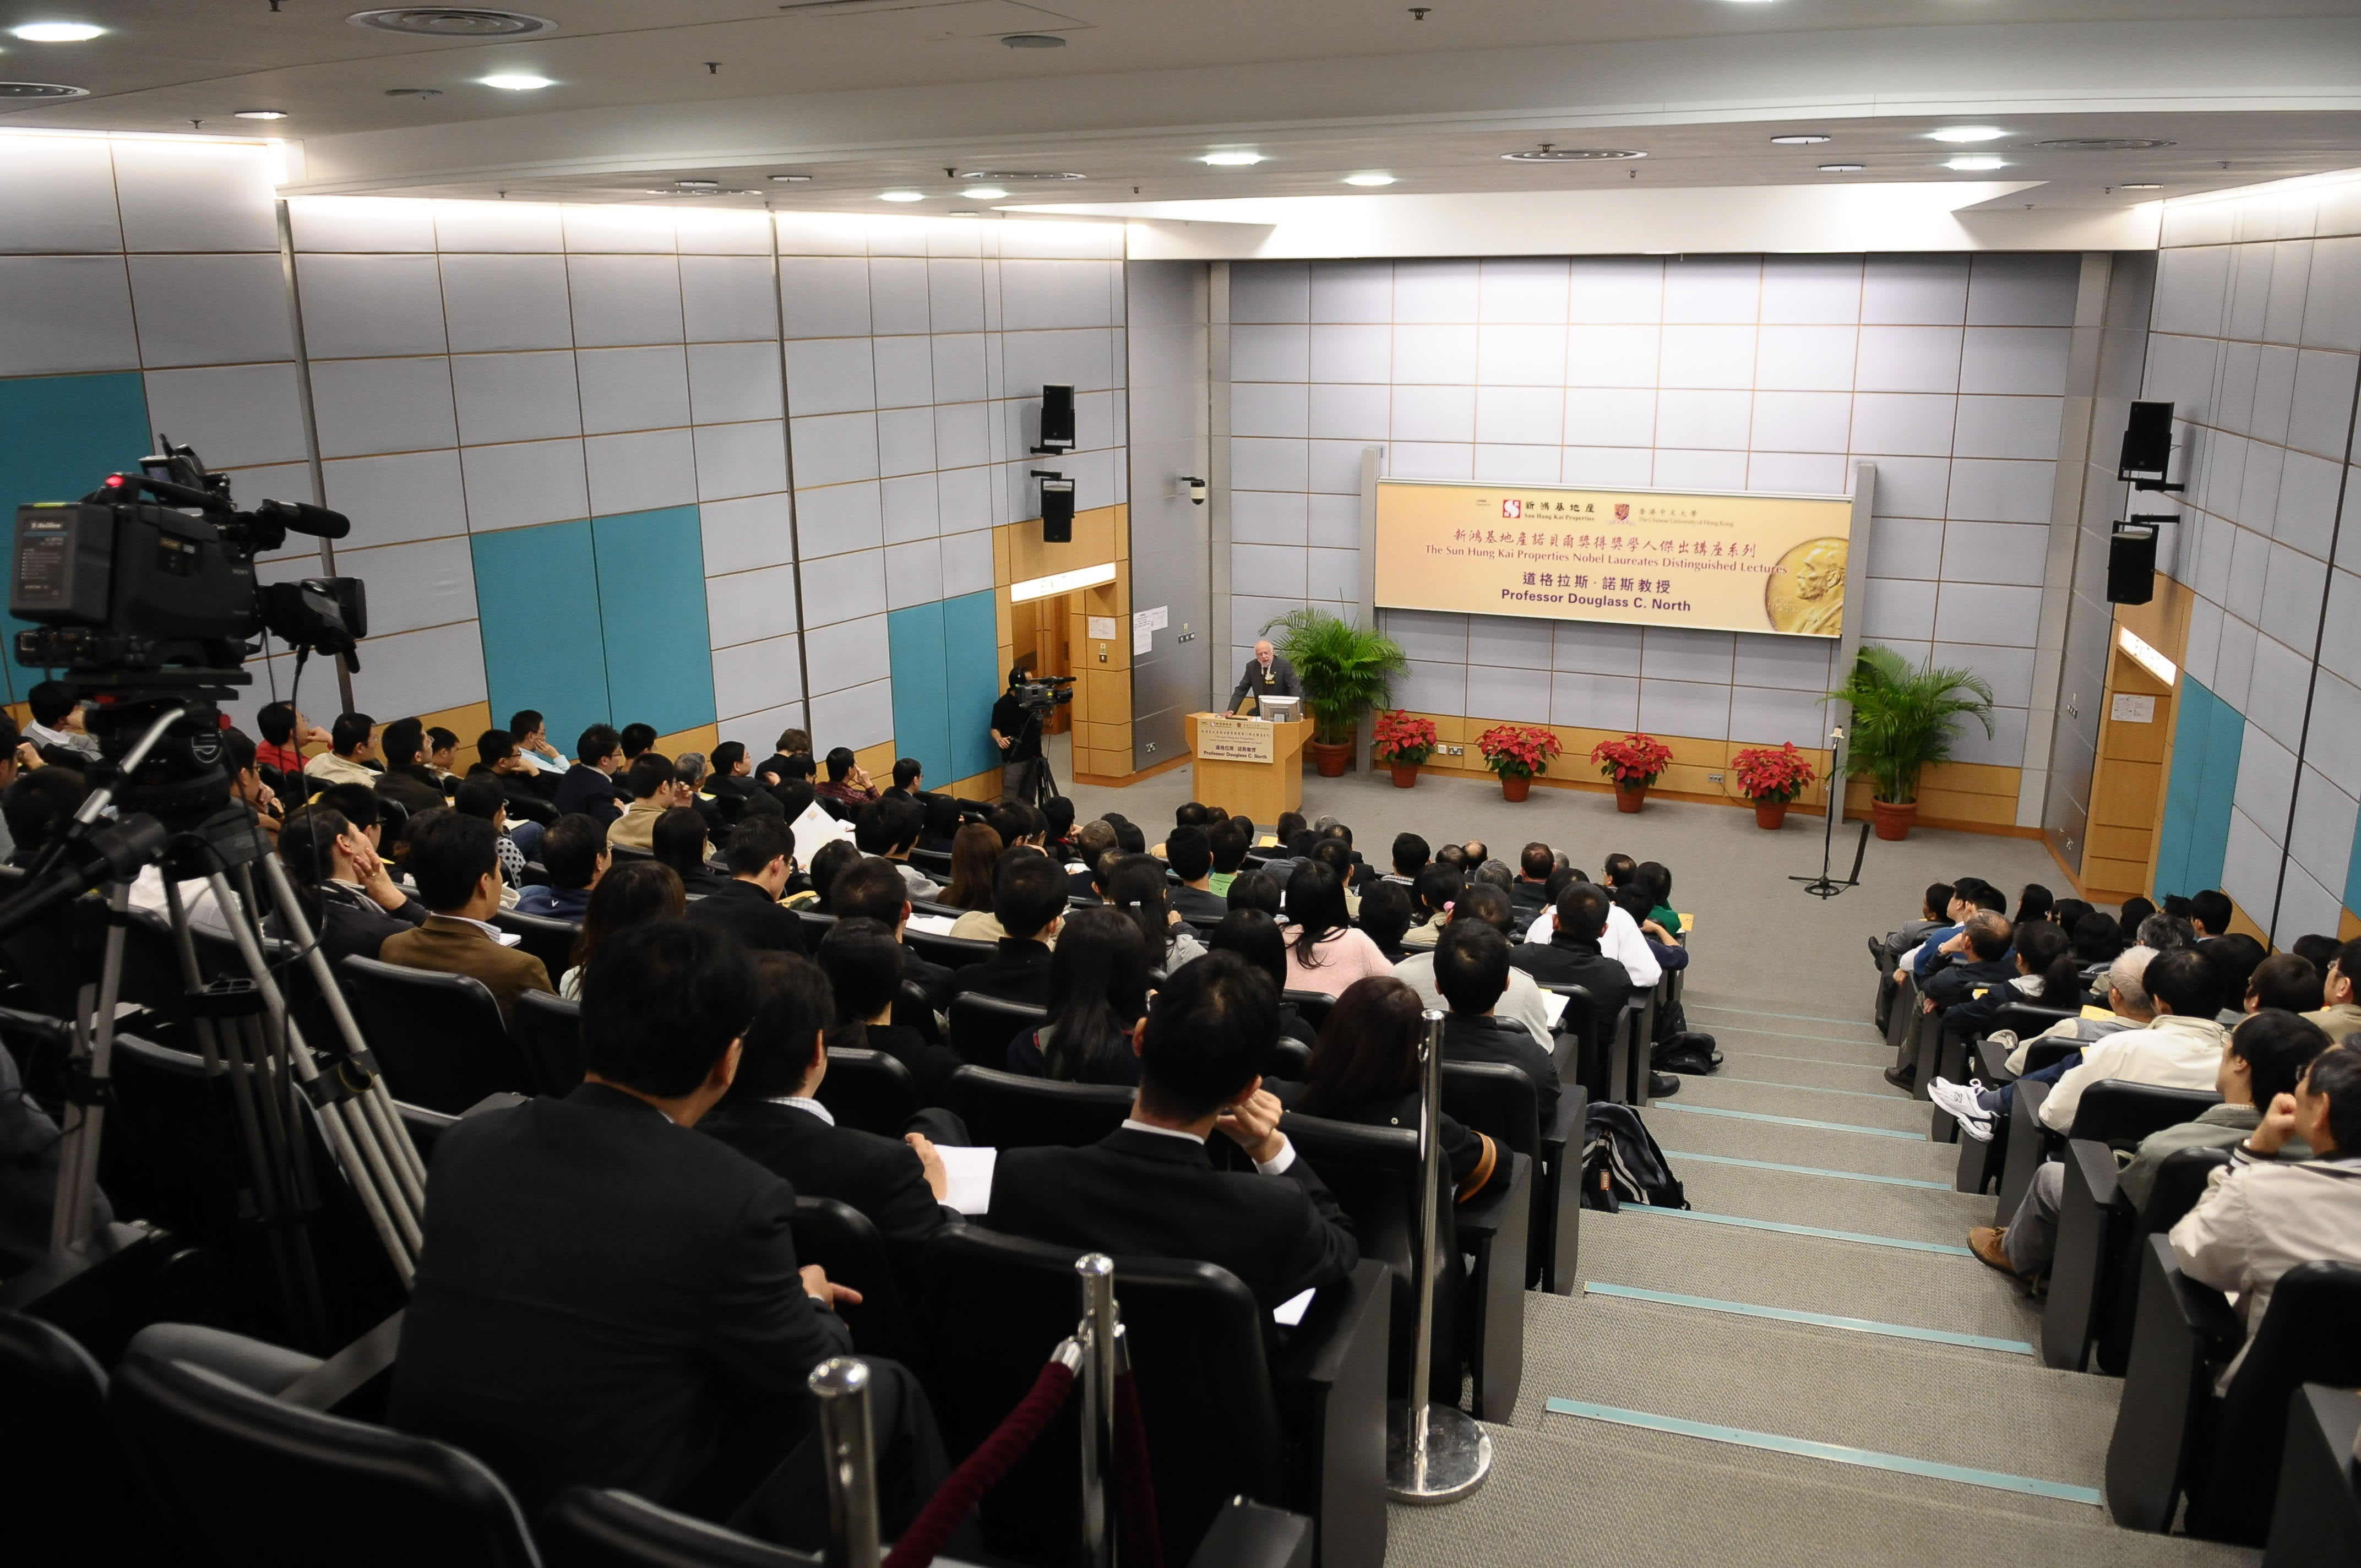 The lecture attracts an audience of close to 200